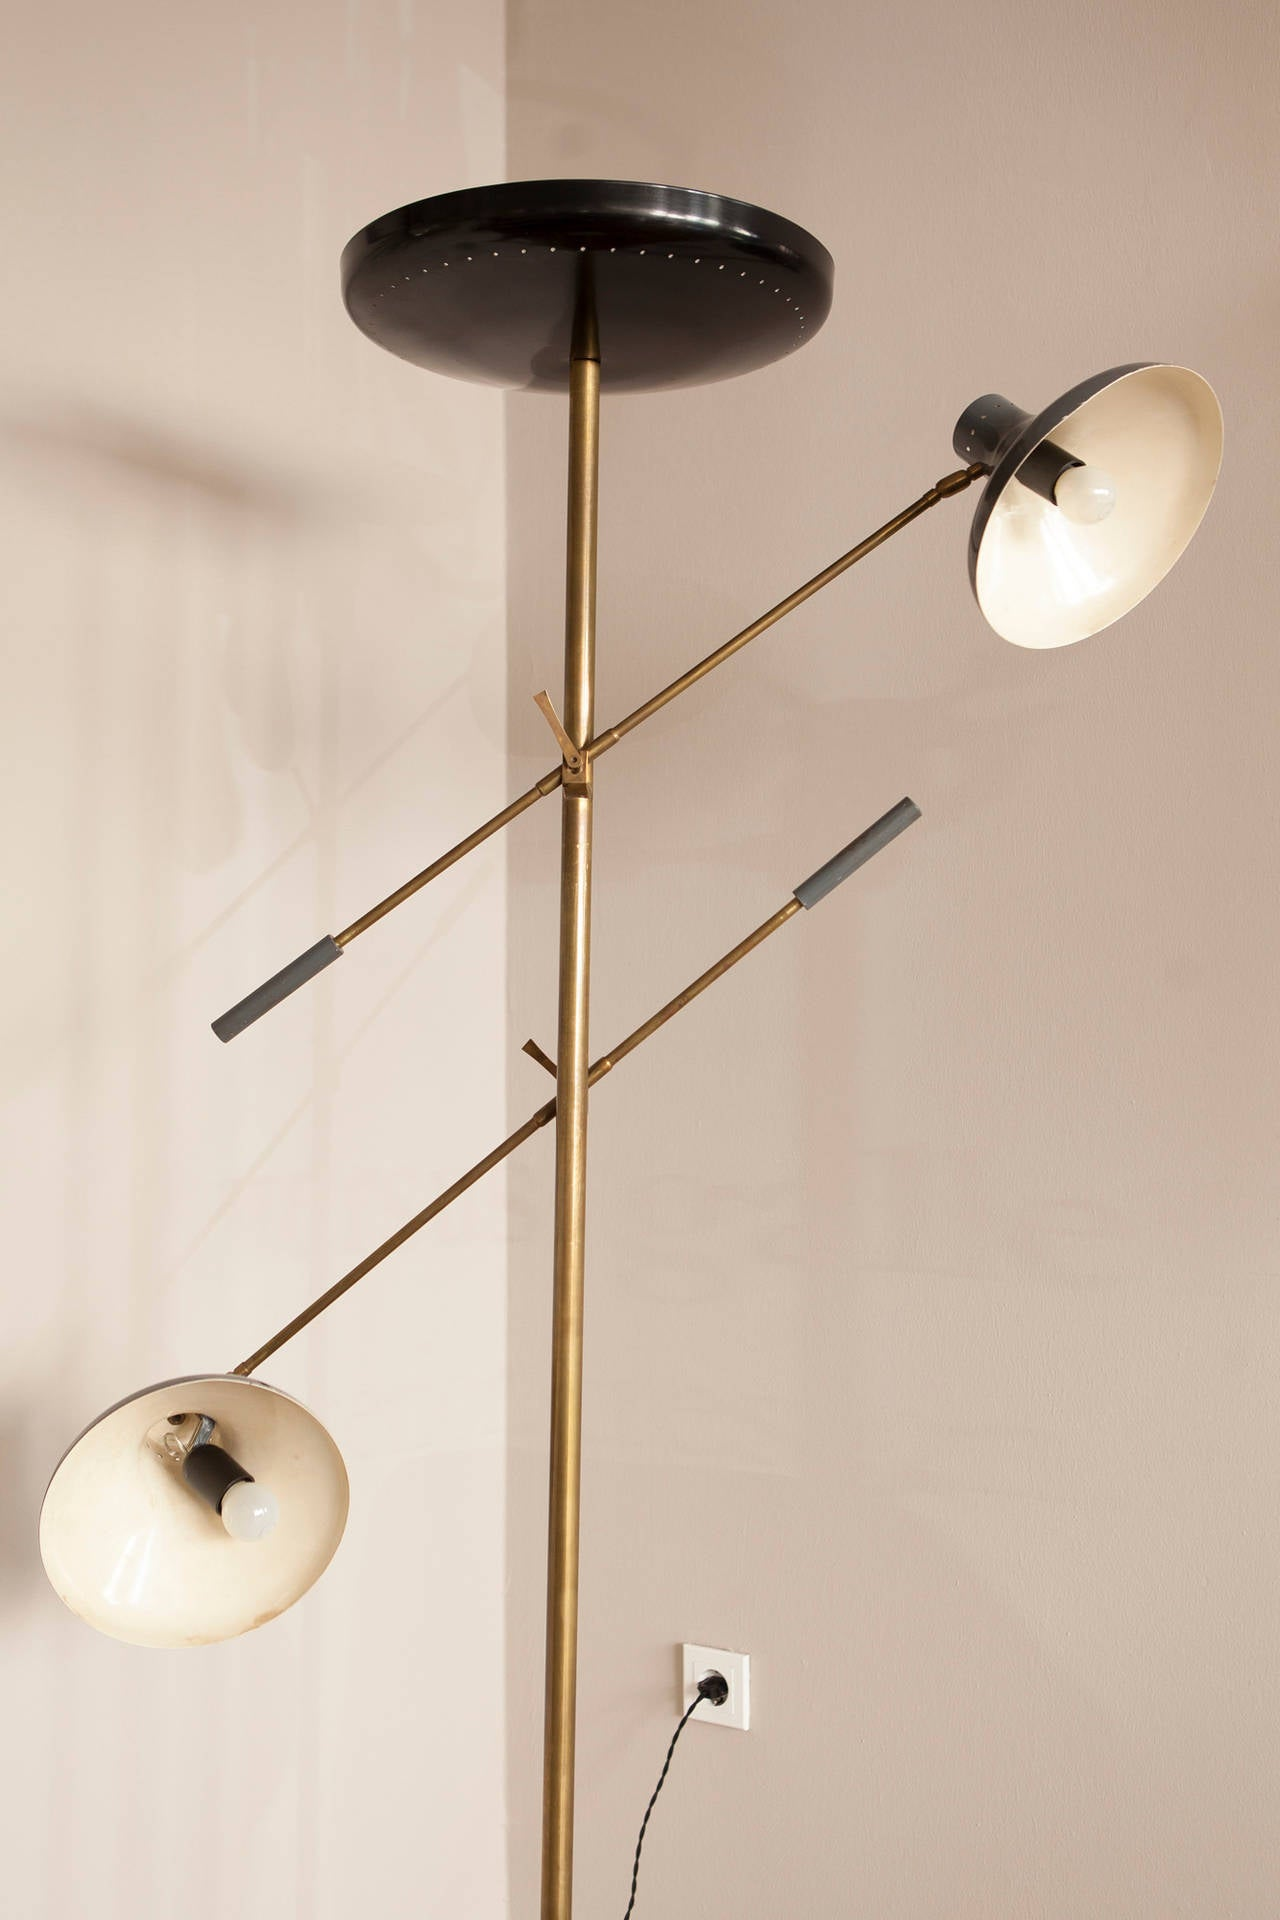 Elegant uplight floor lamp, Italy, circa 1950, height-adjustable light arms, black lacquered torchiere dish shade, grey lacquered shades, brass, marble base. Measures: Height 182 cm, width 108 cm, length each arm 94 cm, base diameter 28 cm, dish